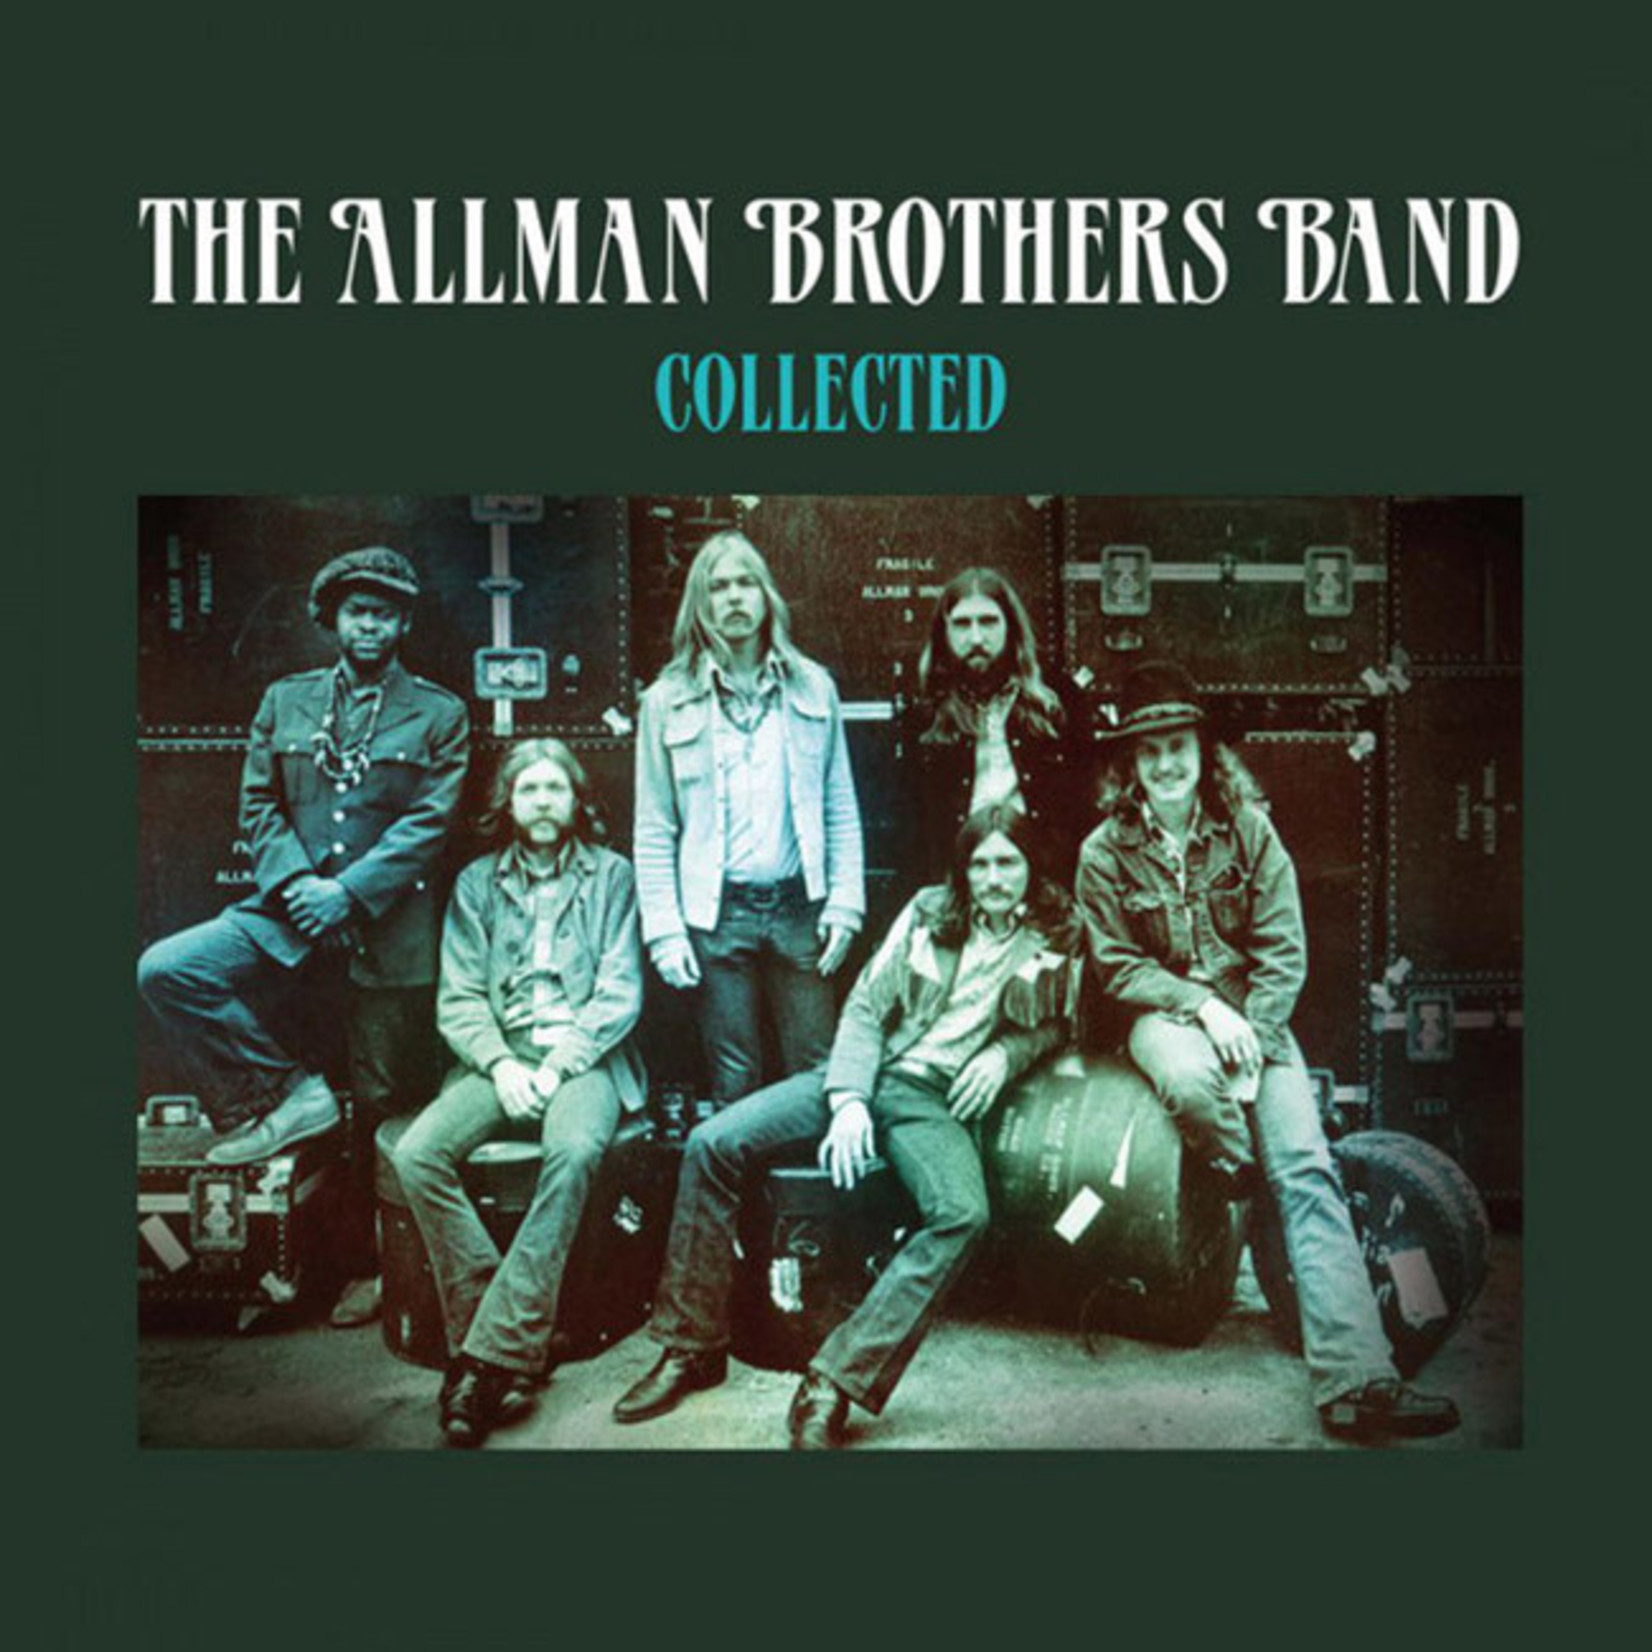 [New] Allman Brothers Band: Collected (2LP, green vinyl)